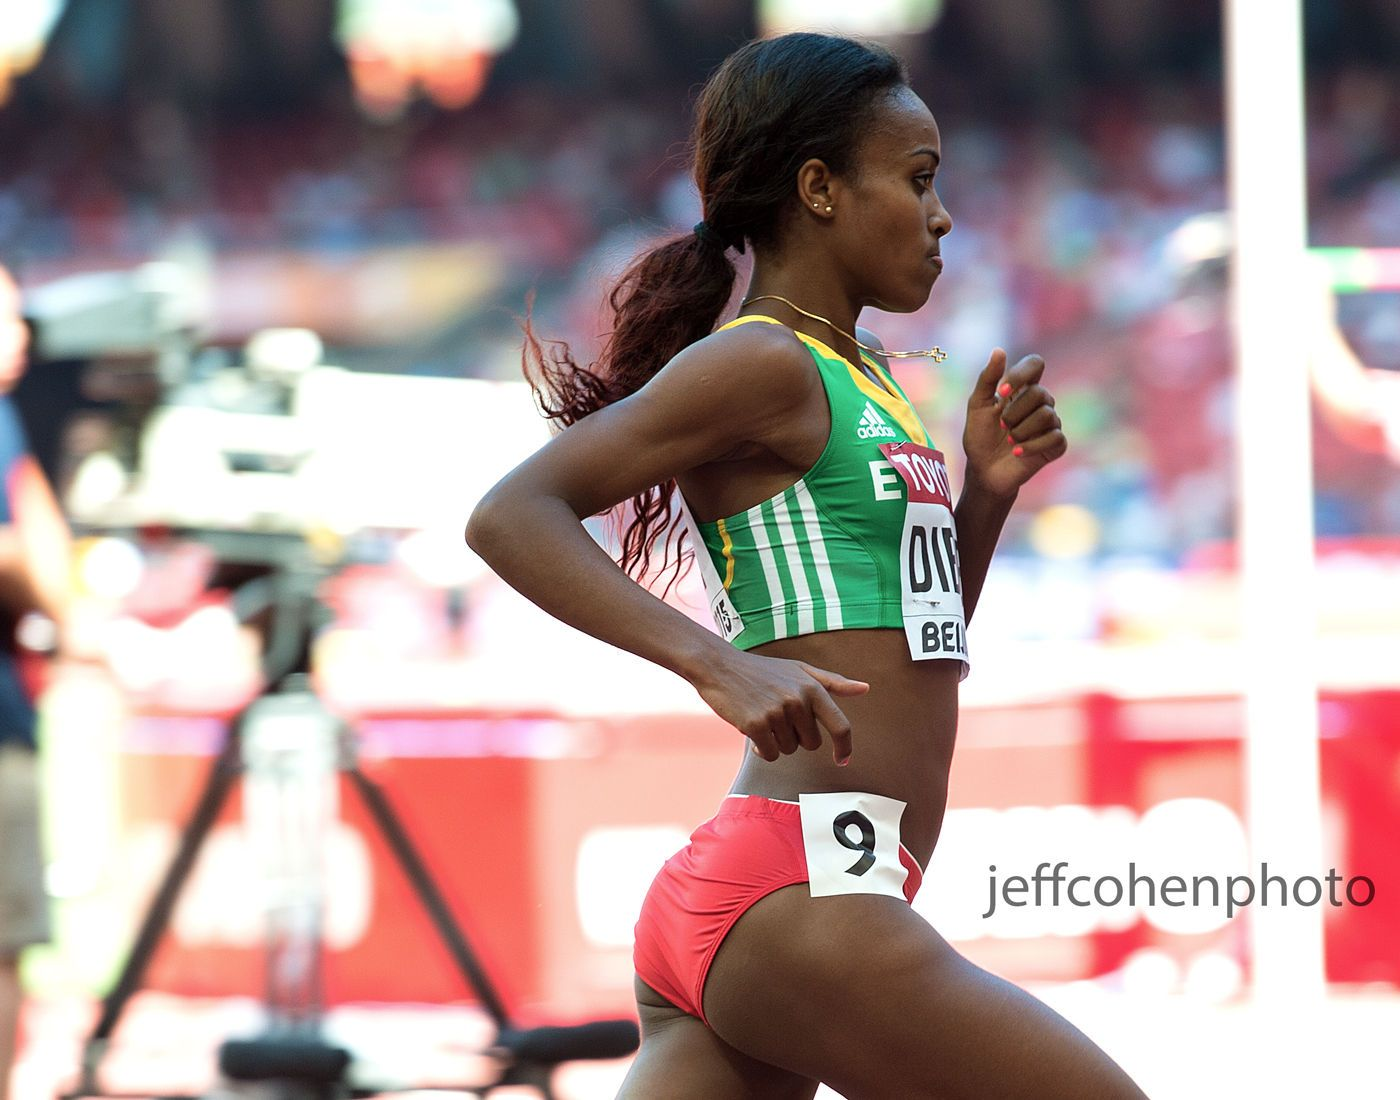 1day1_dibaba_1500m_jeffcohenphoto_web.jpg